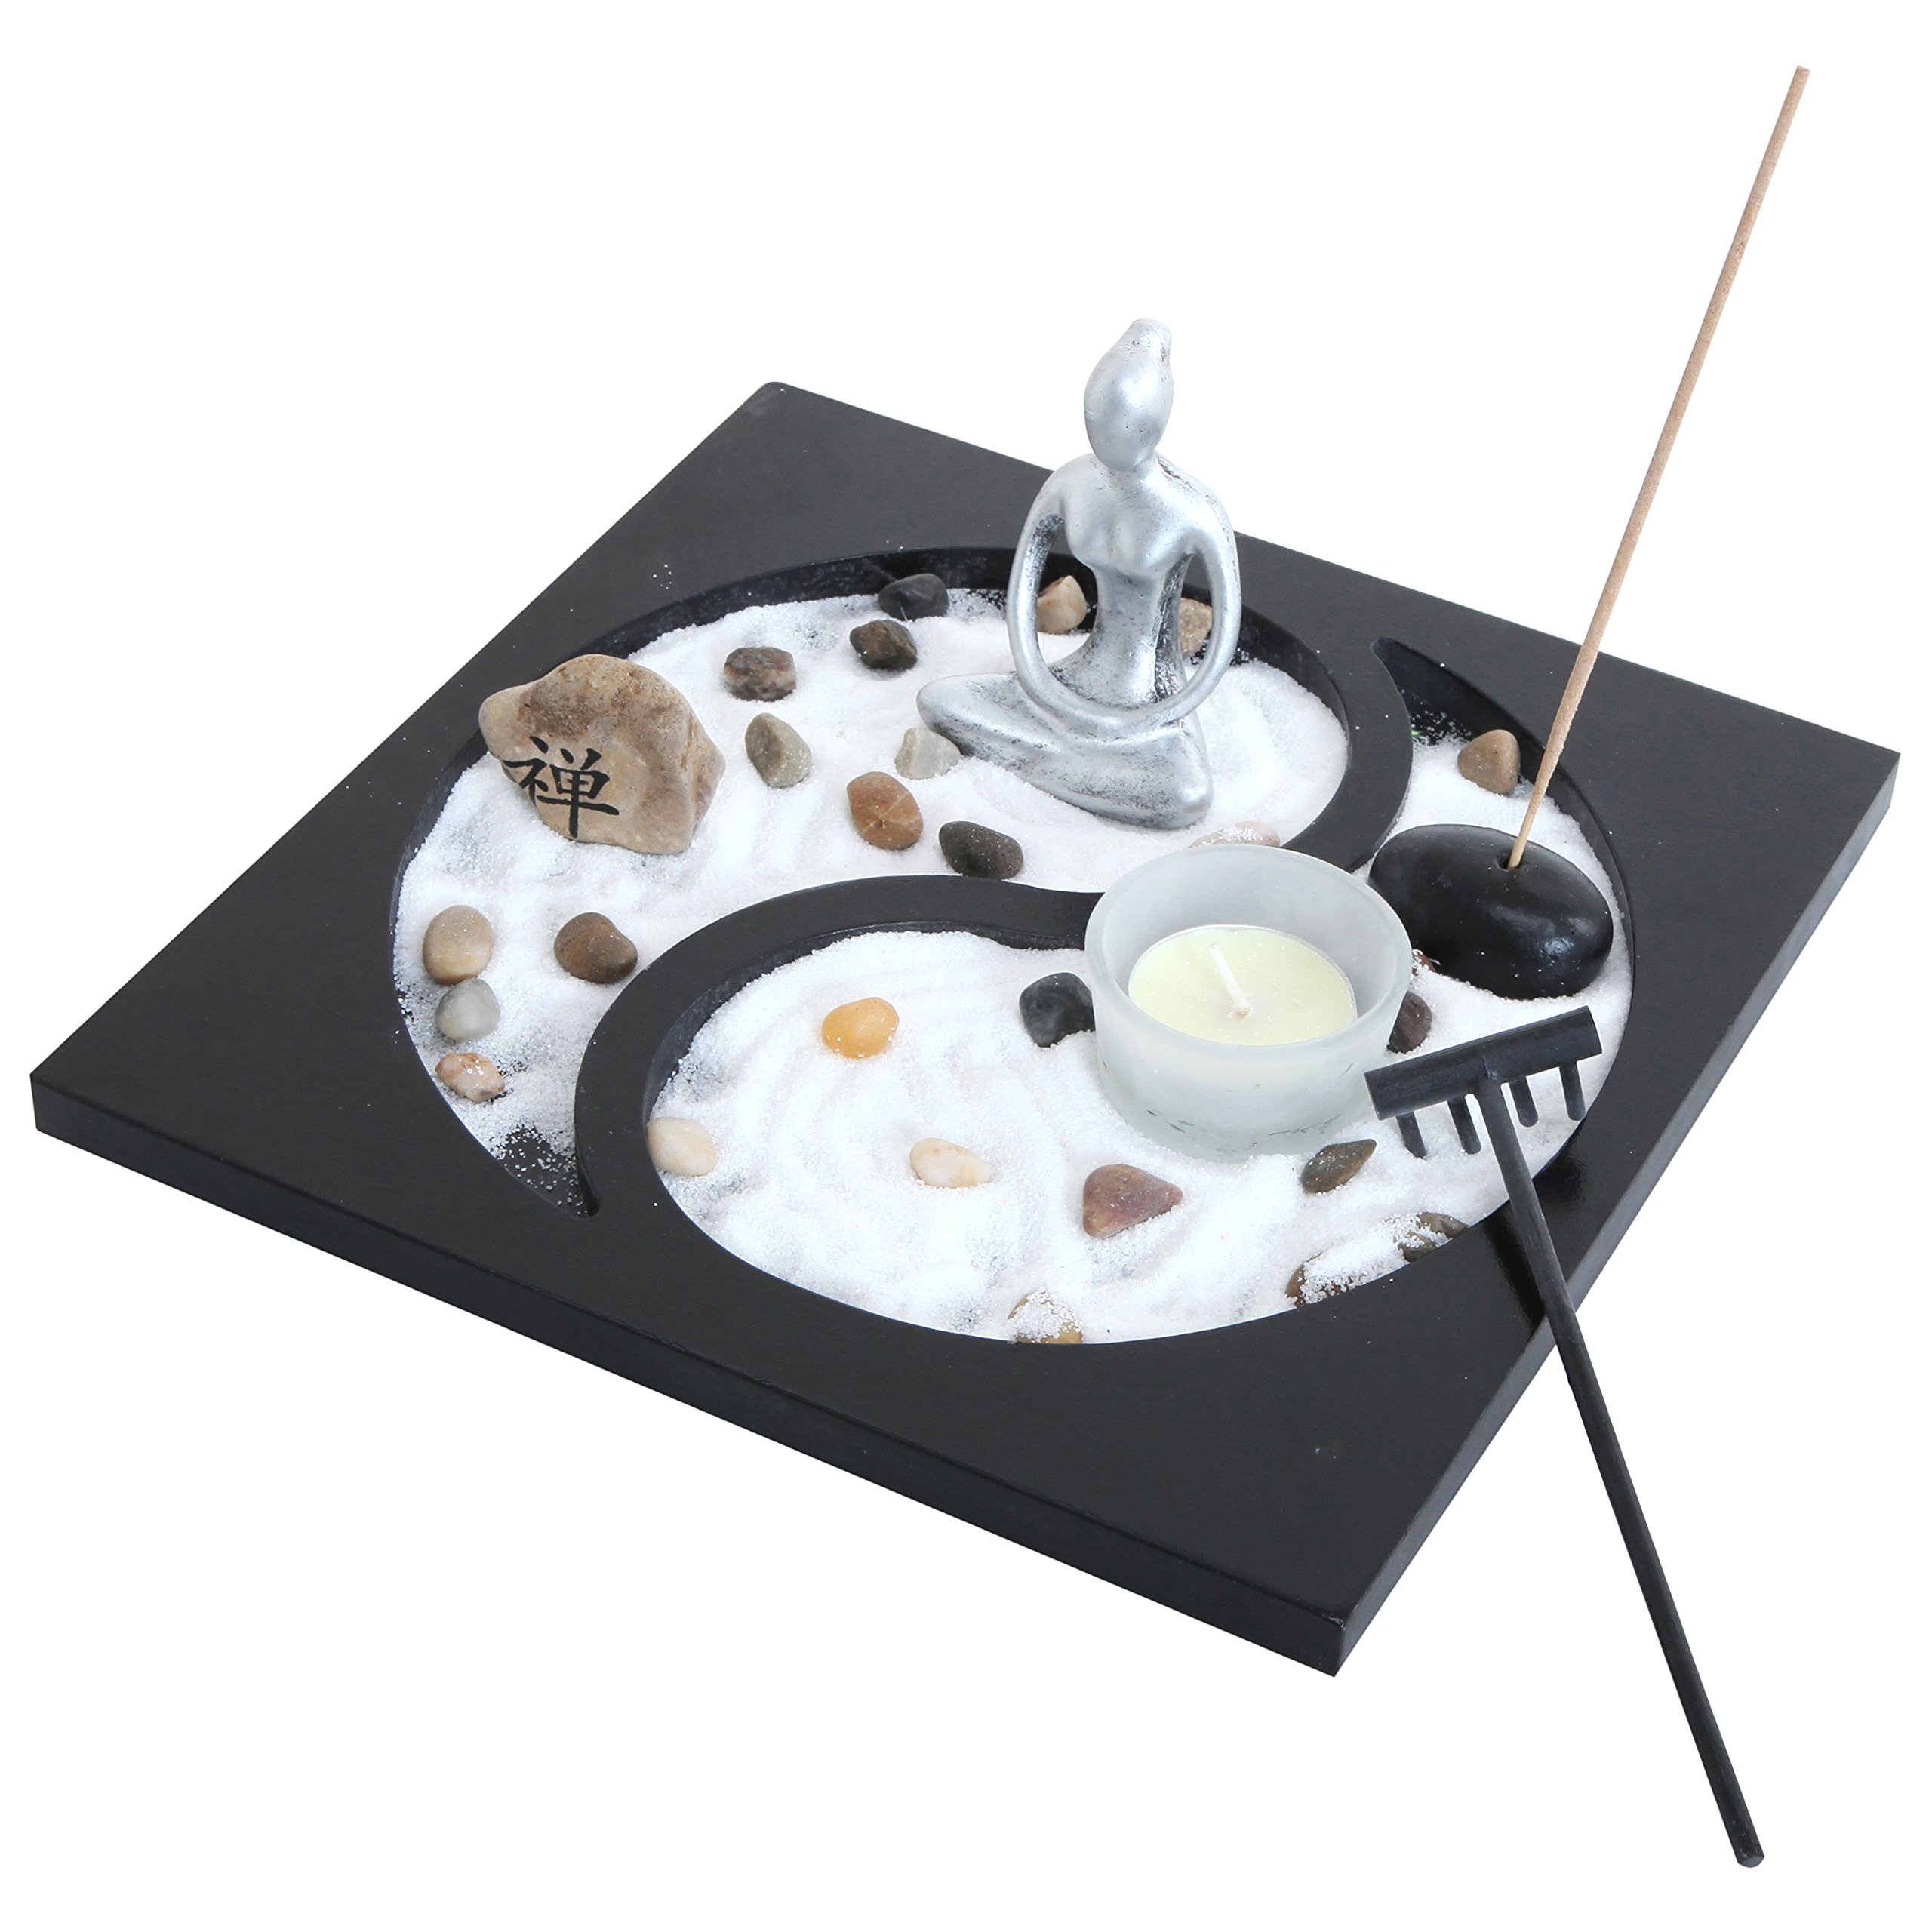 Zen Sand Rocks Candle Holder Taiji Yin Yang Tabletop Rake Garden Kit Incense Burner Gift